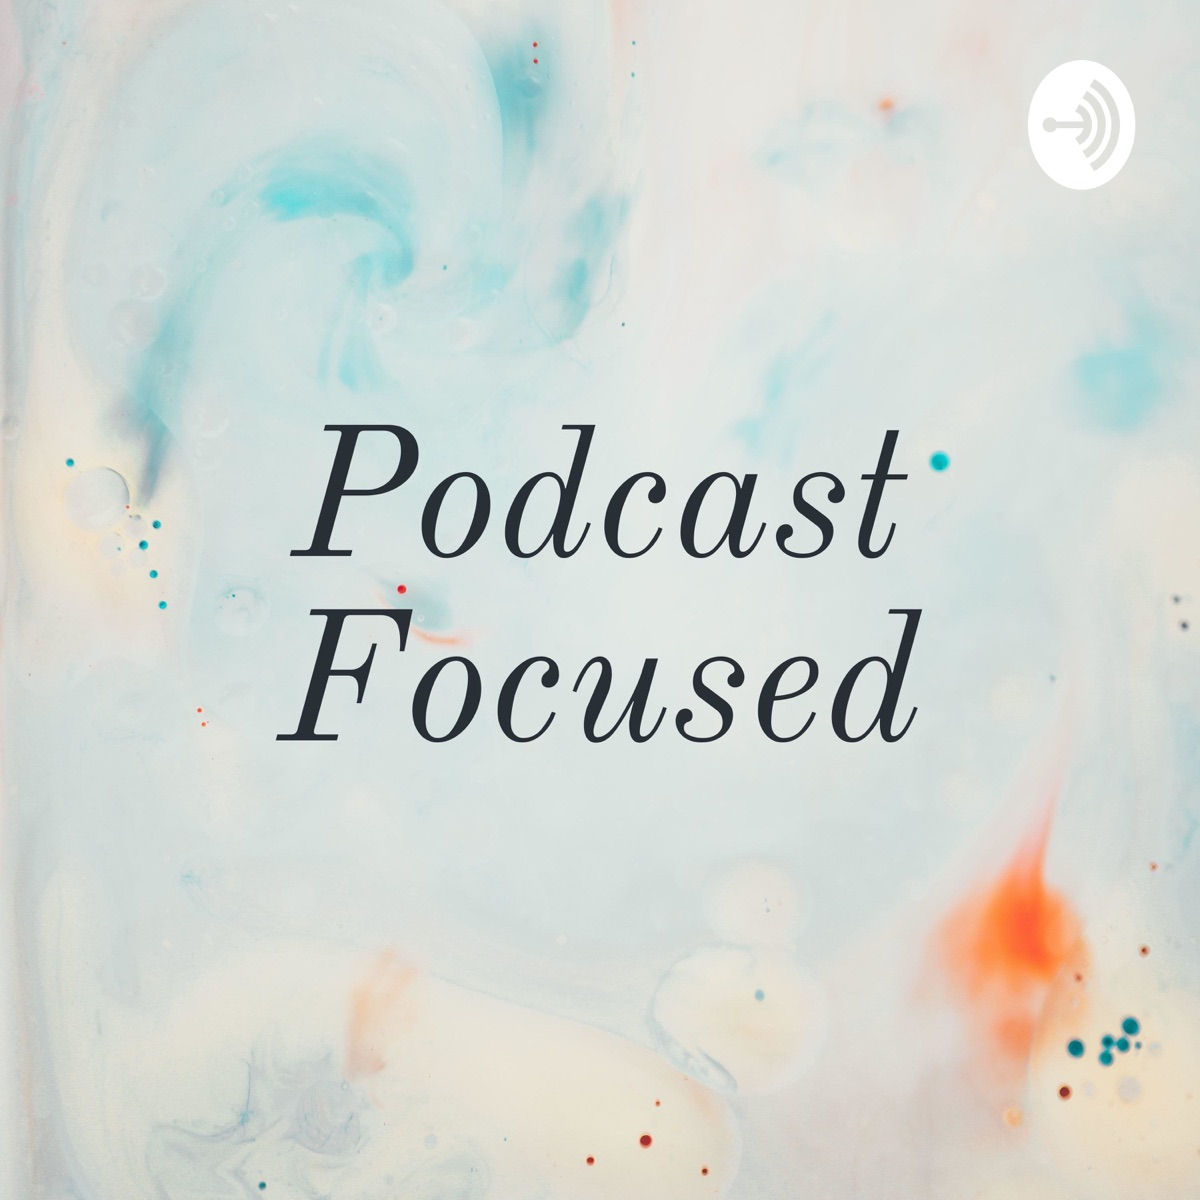 Podcast Focused